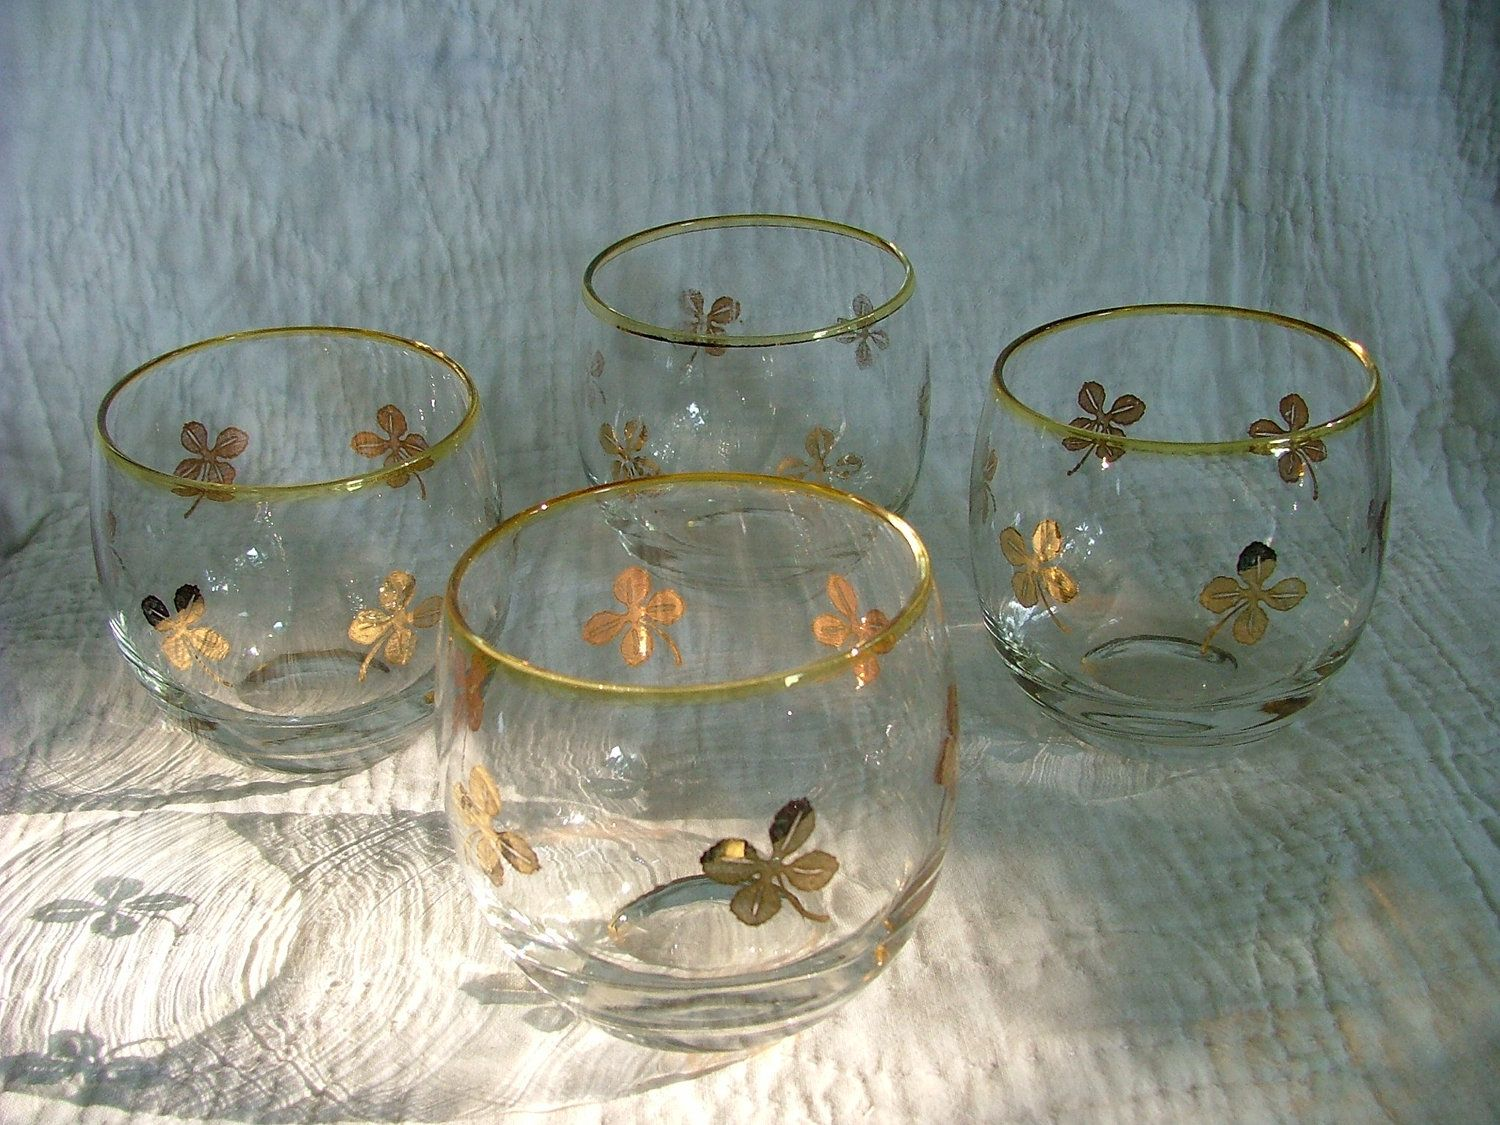 Four Large Vintage Roly Poly Lucky  Clover Mad Men Style Glasses. $15.00, via Etsy.